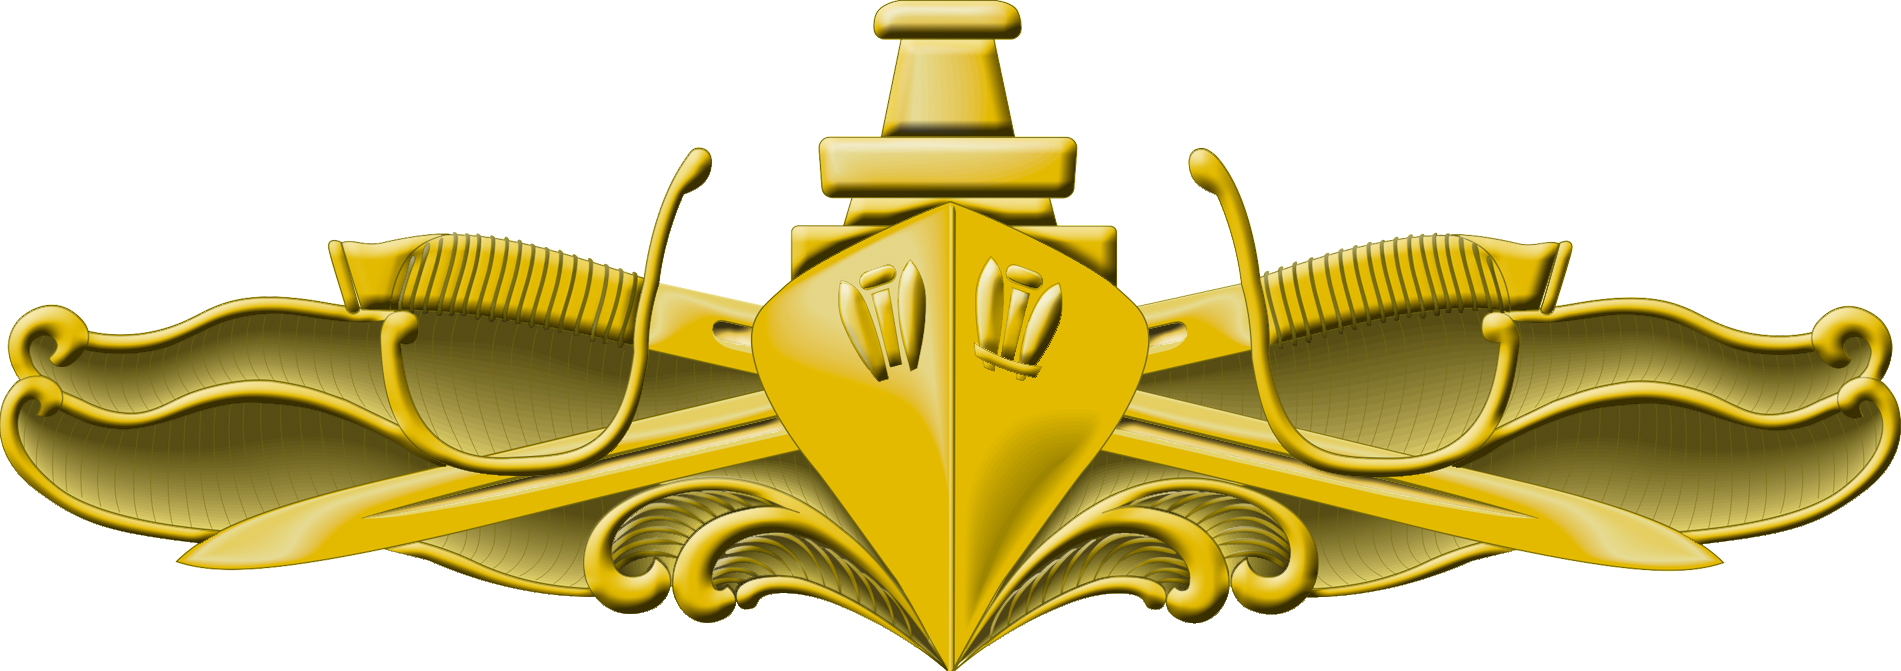 File surface warfare insignia. Sailor clipart naval officer